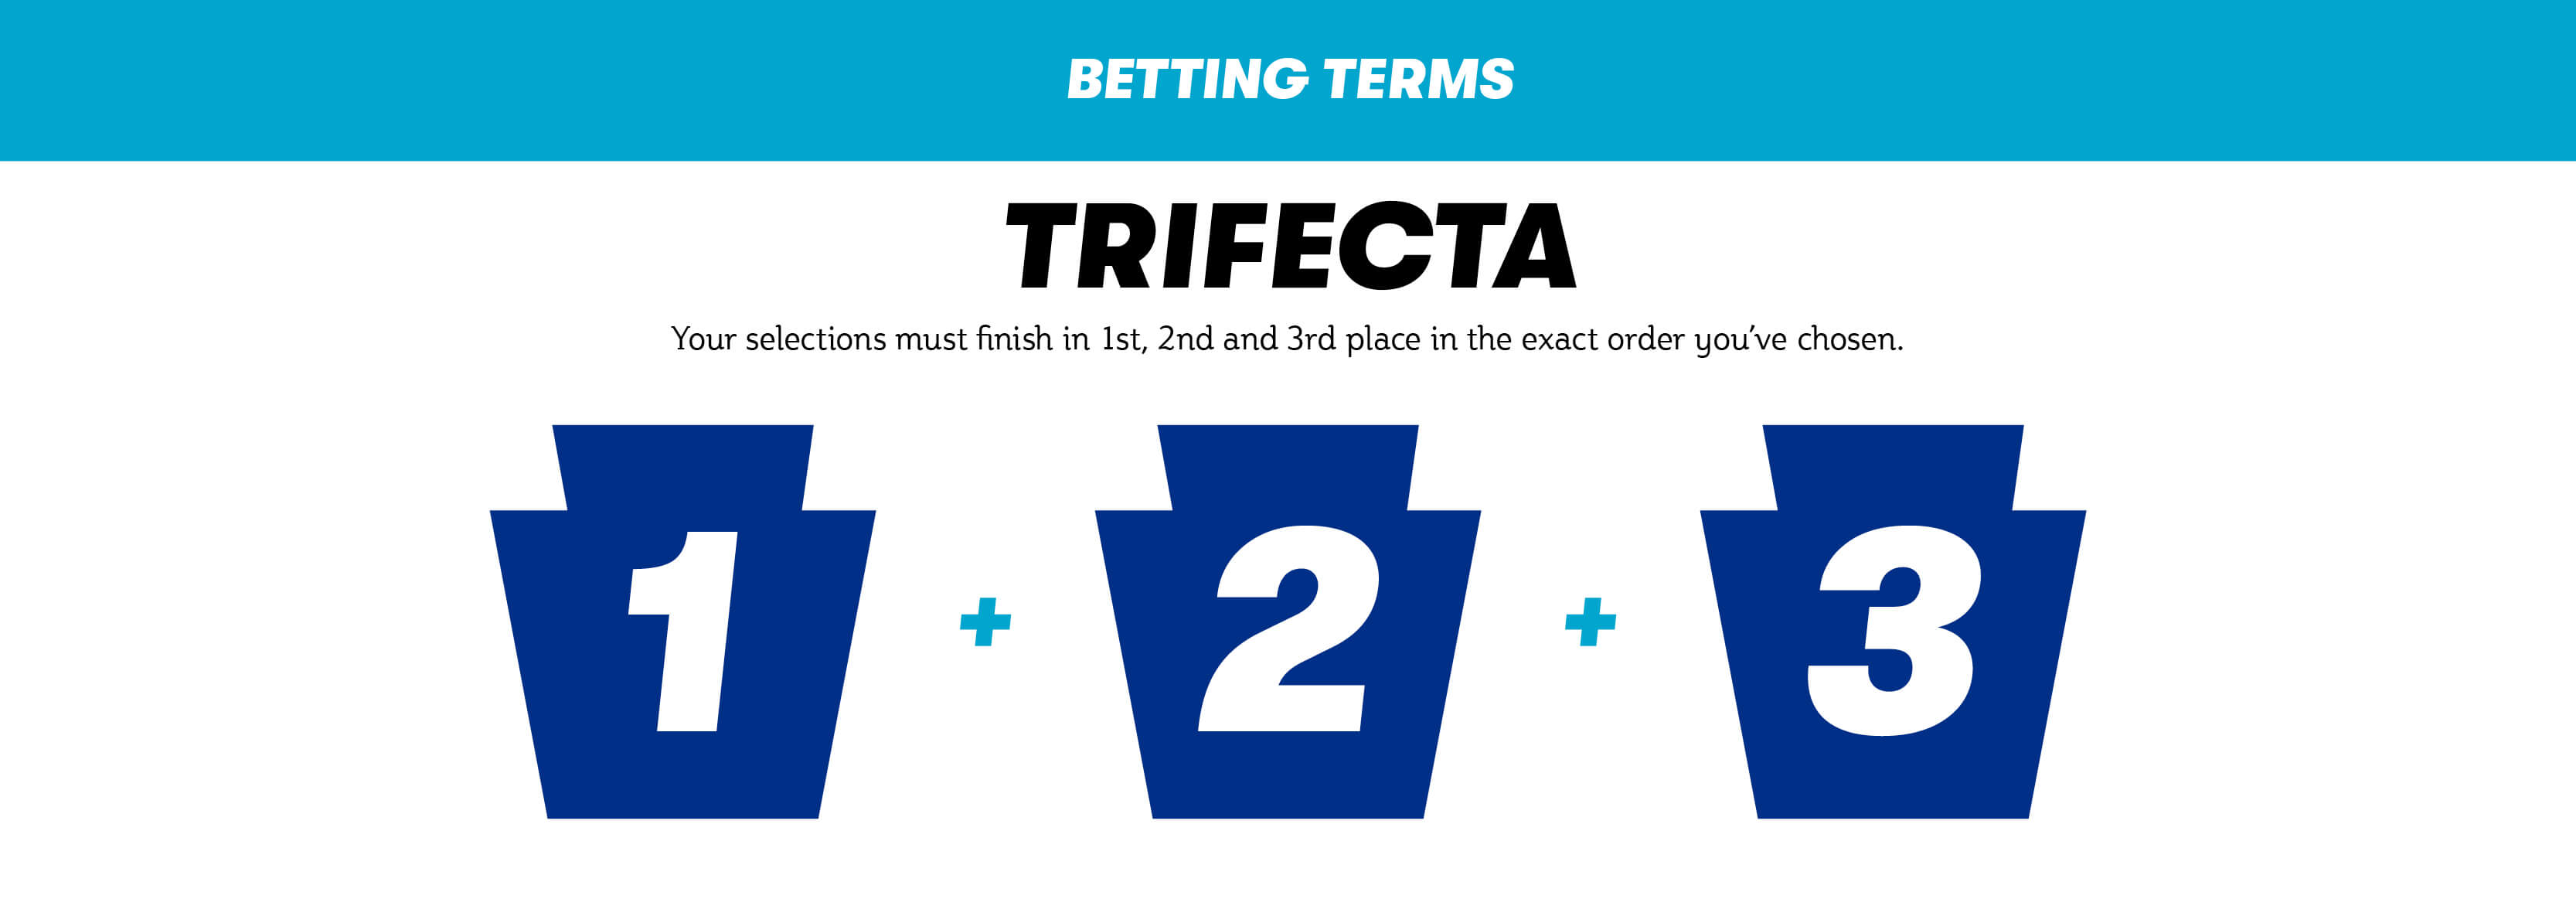 Trifecta. Your selections must finish in first, second and third place in the exact order you've chosen.